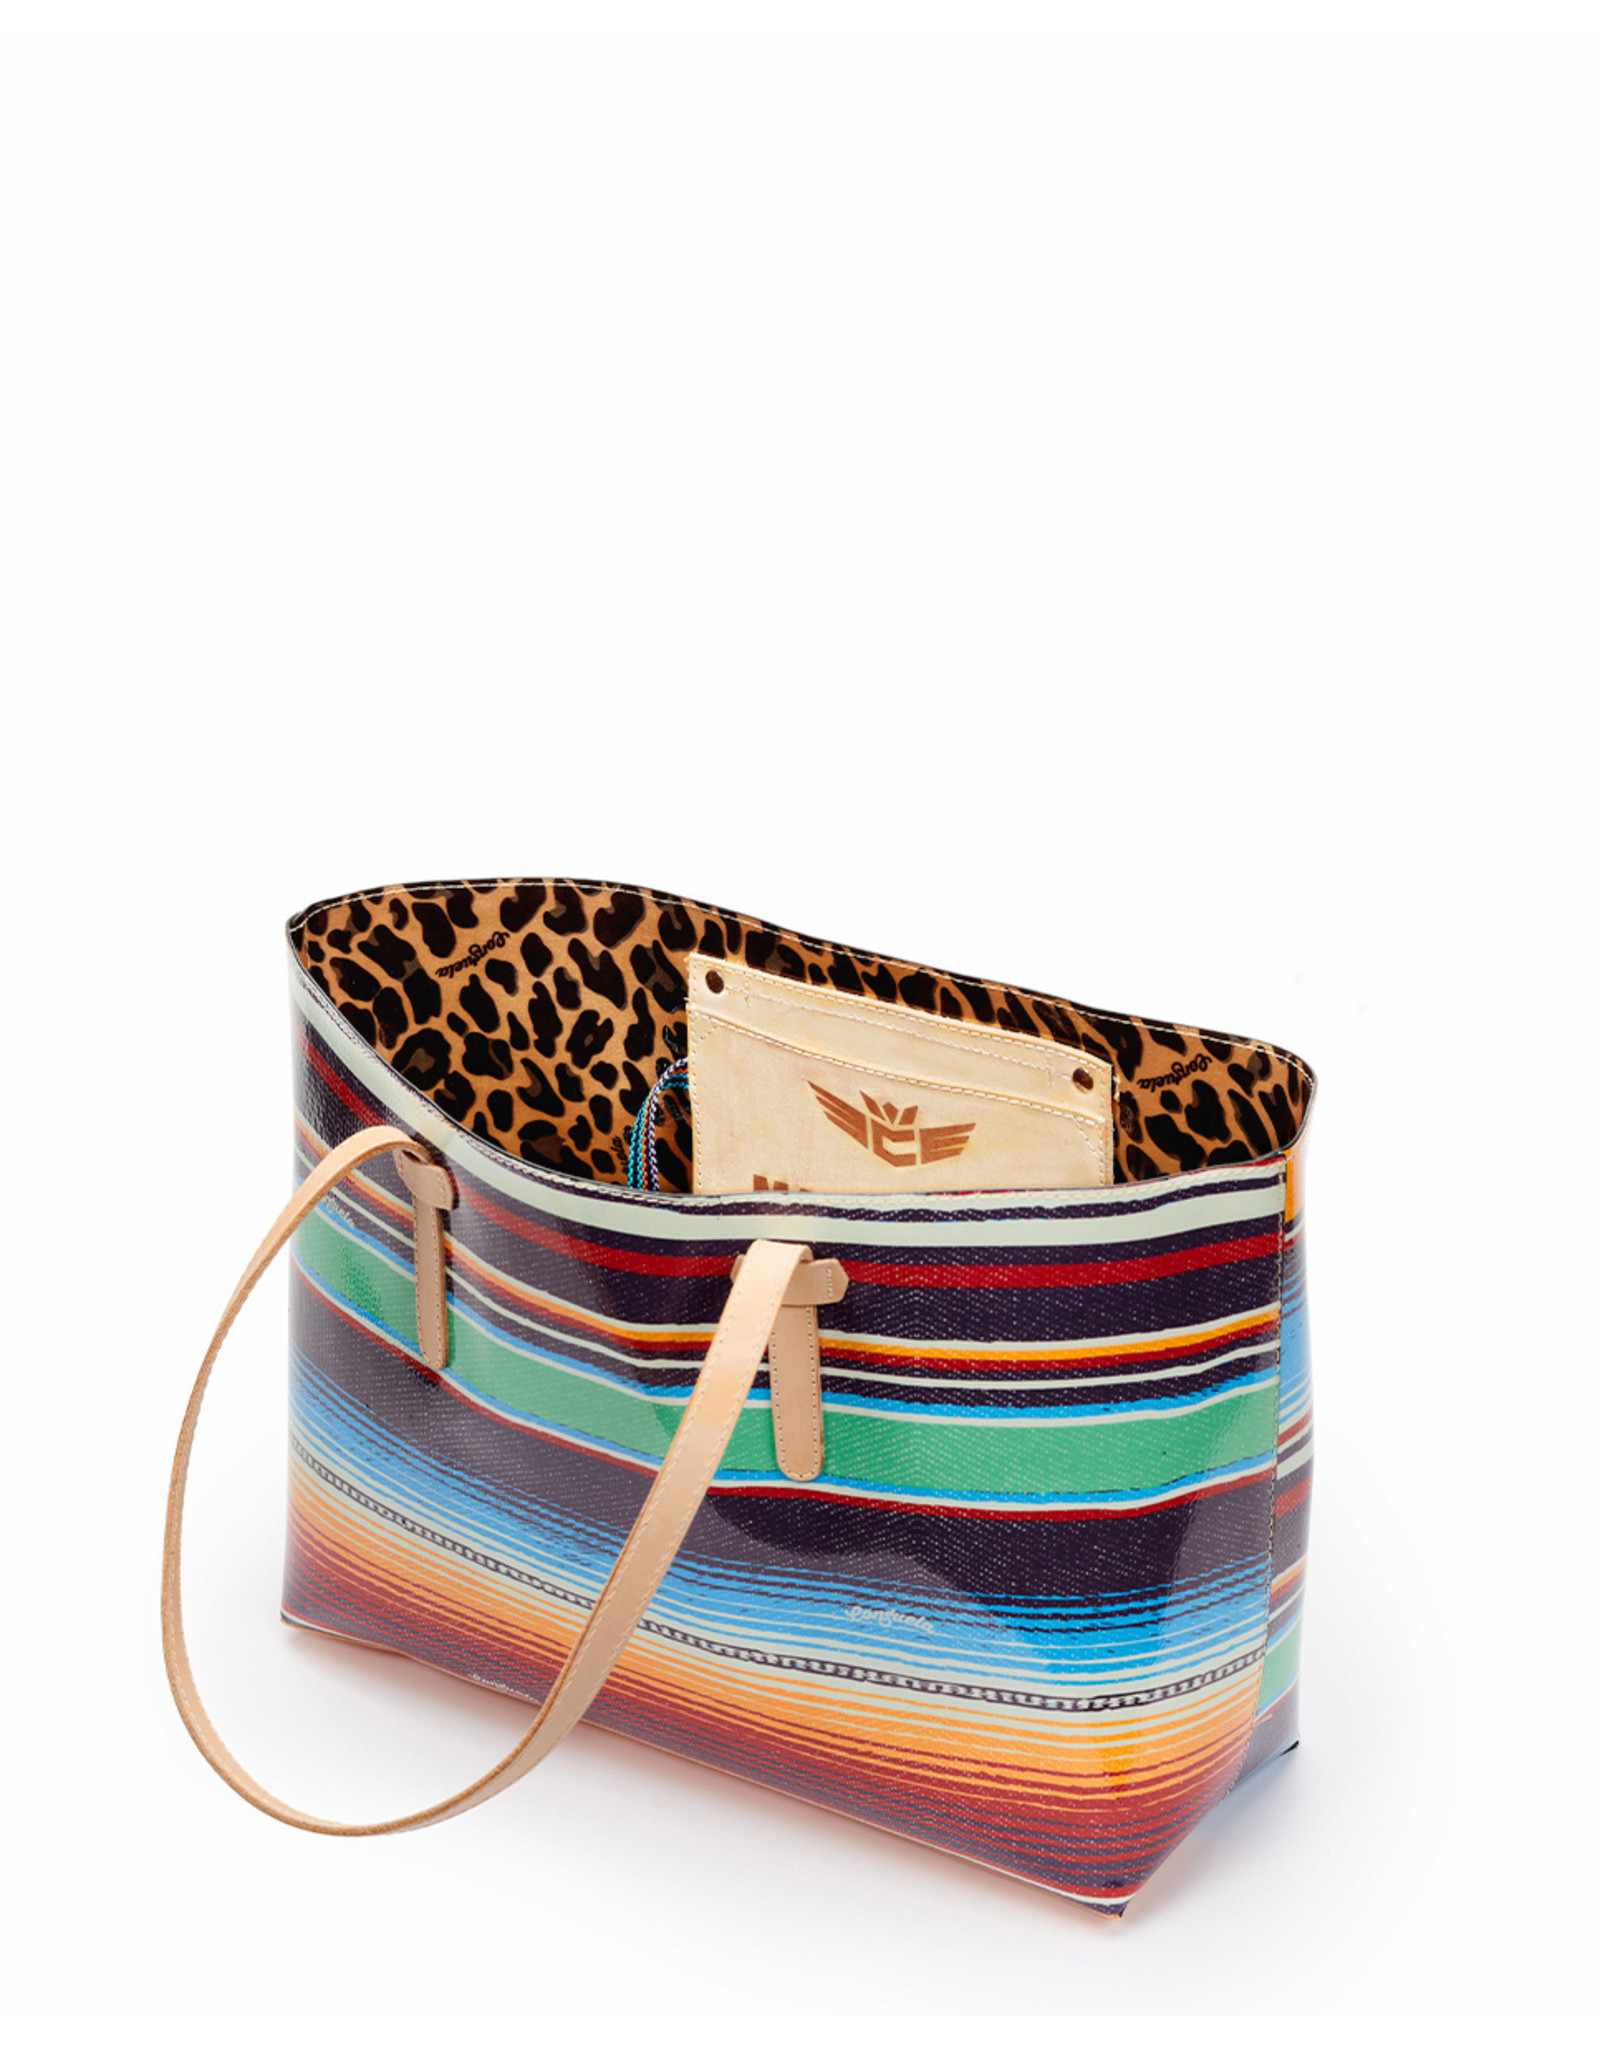 Breezy East West Tote - Deanna